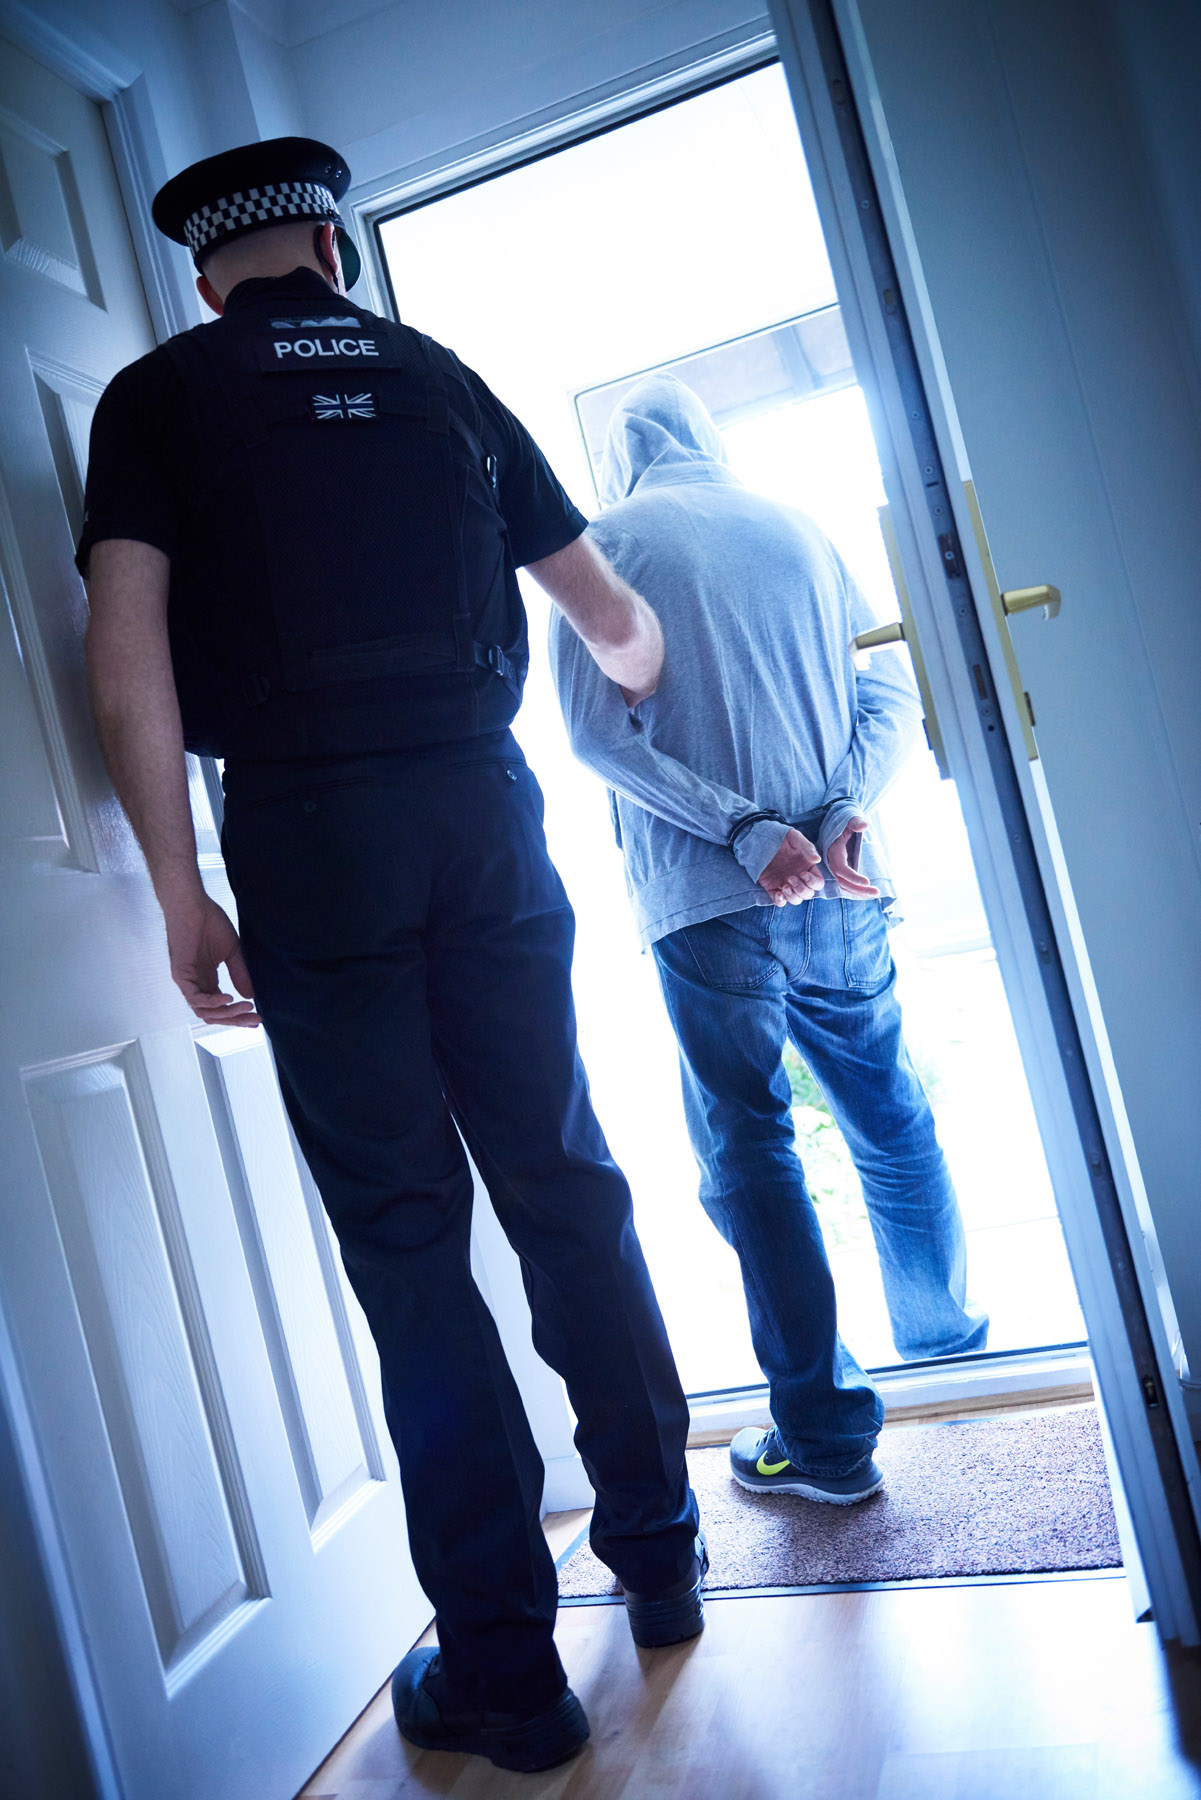 A police officer arrests a suspect